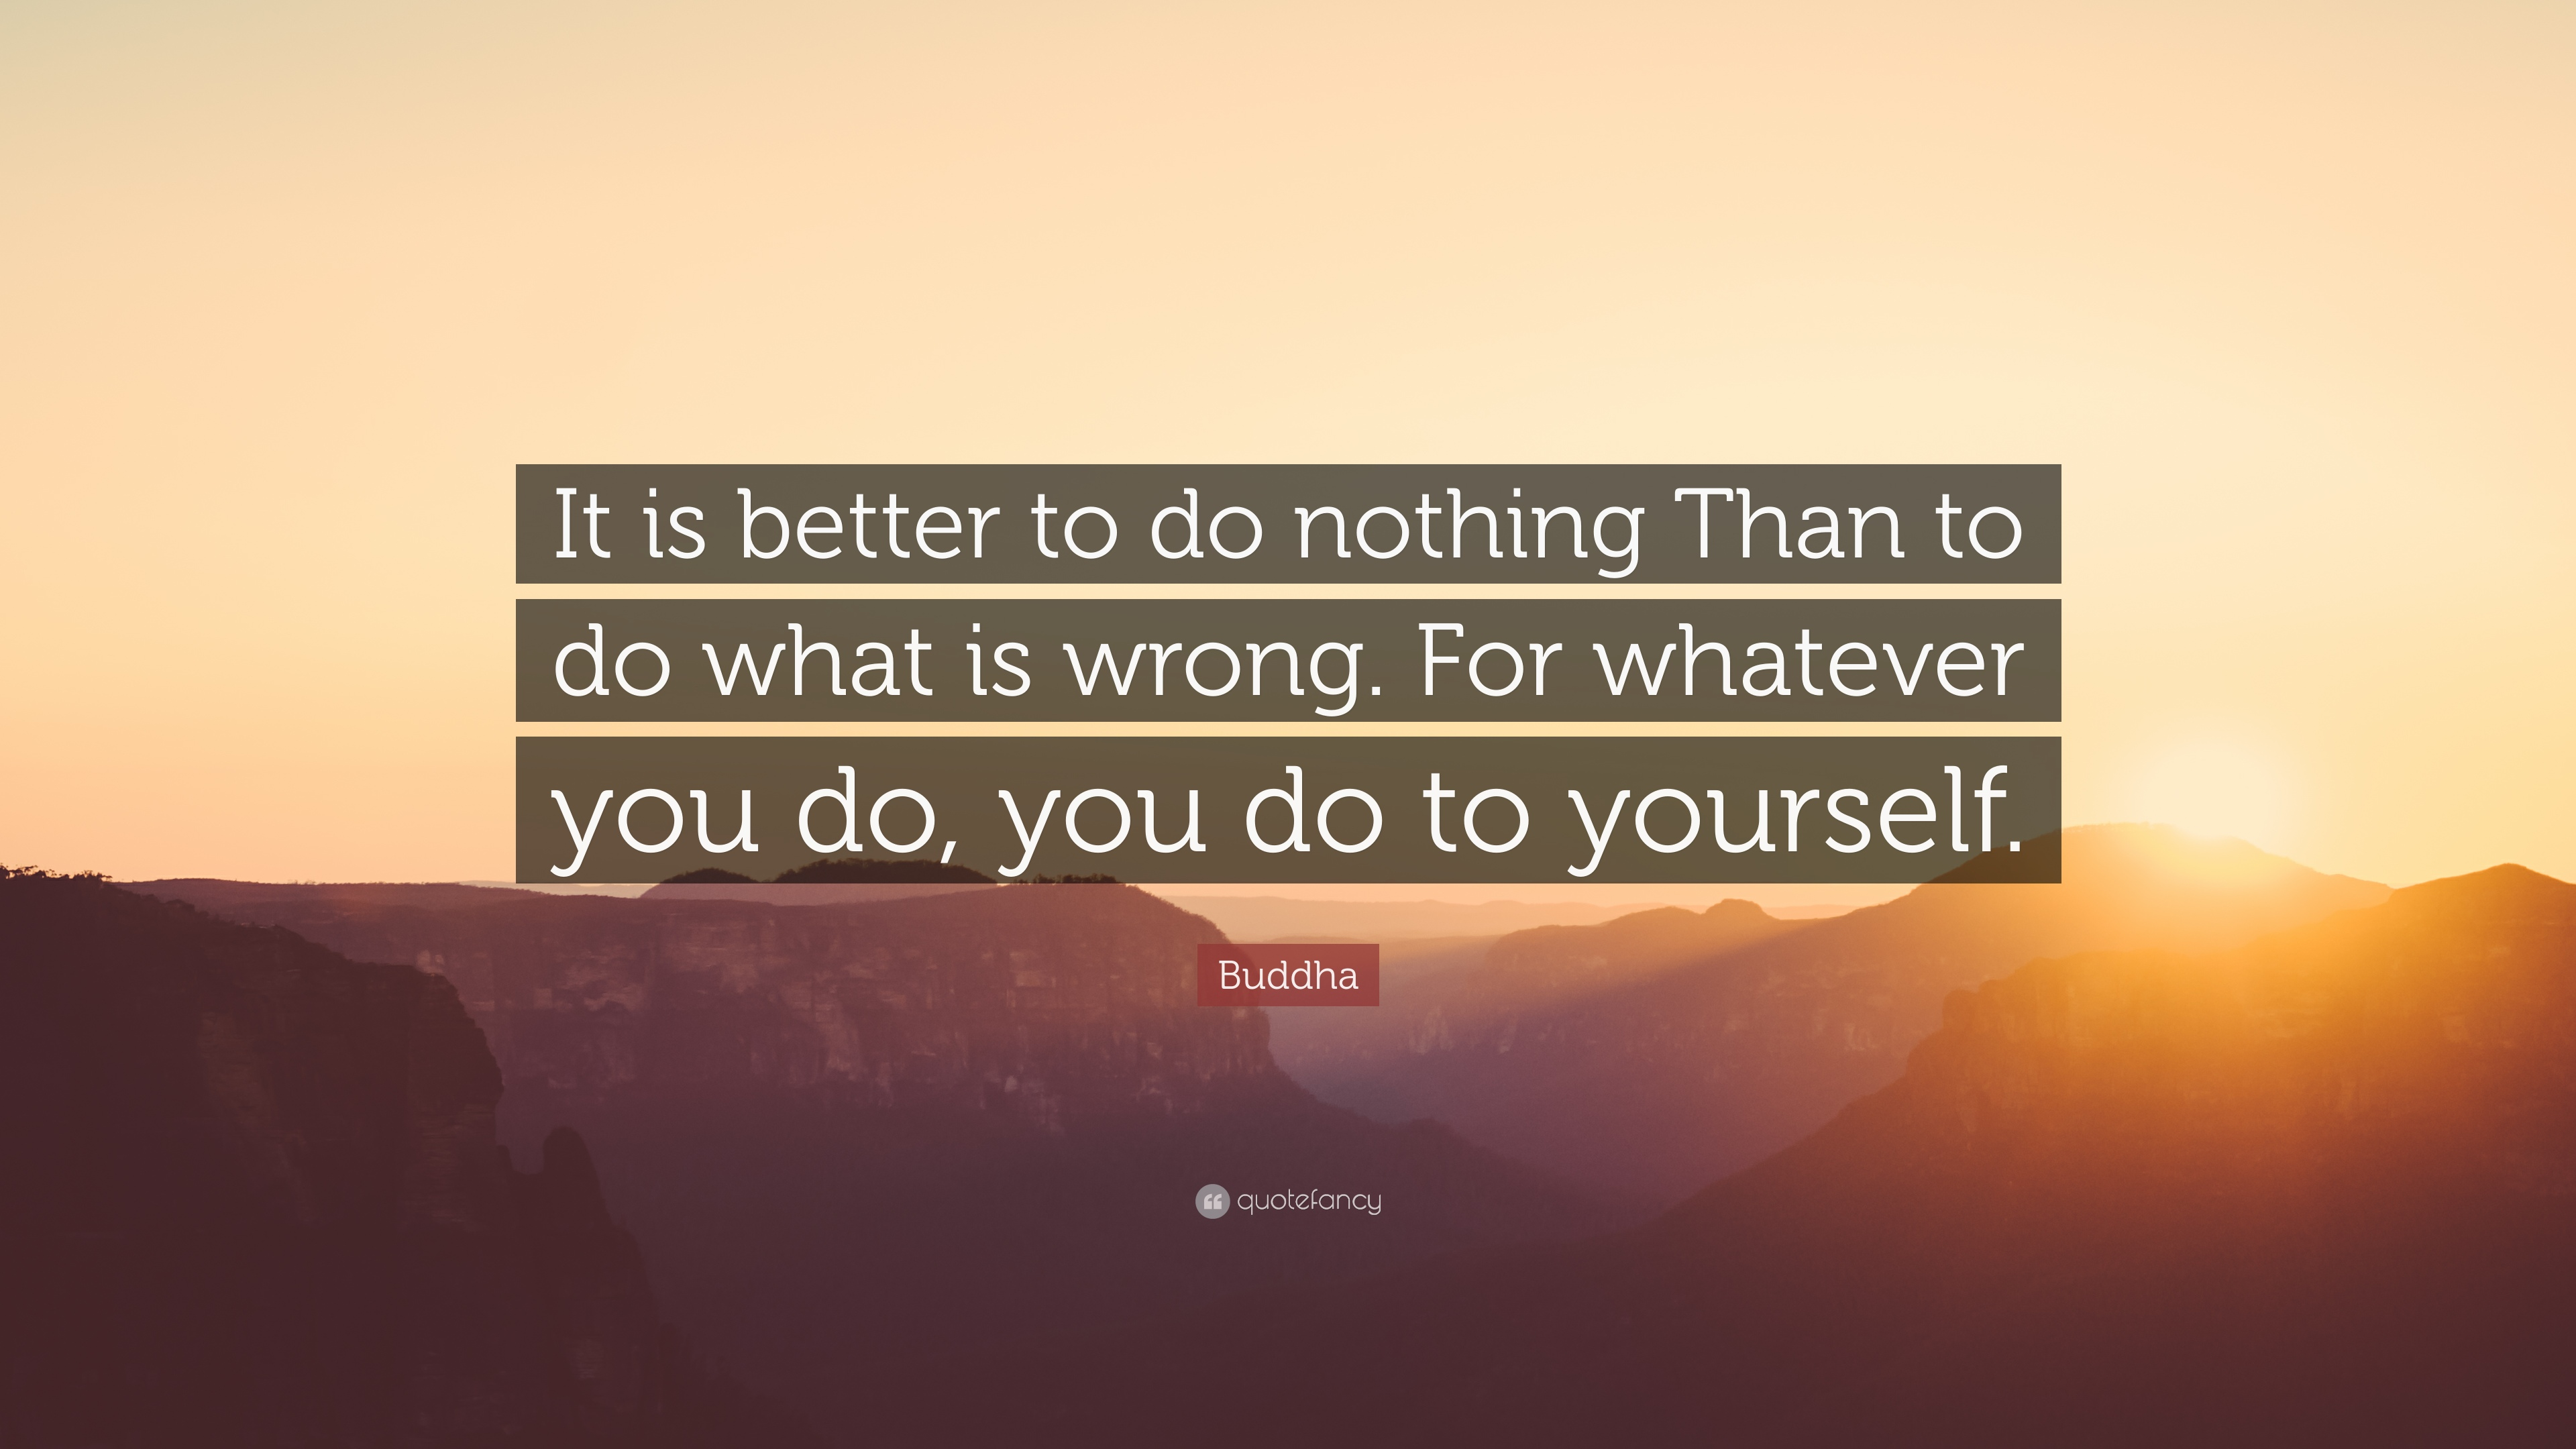 Buddha quote it is better to do nothing than to do what is wrong buddha quote it is better to do nothing than to do what is wrong solutioingenieria Choice Image